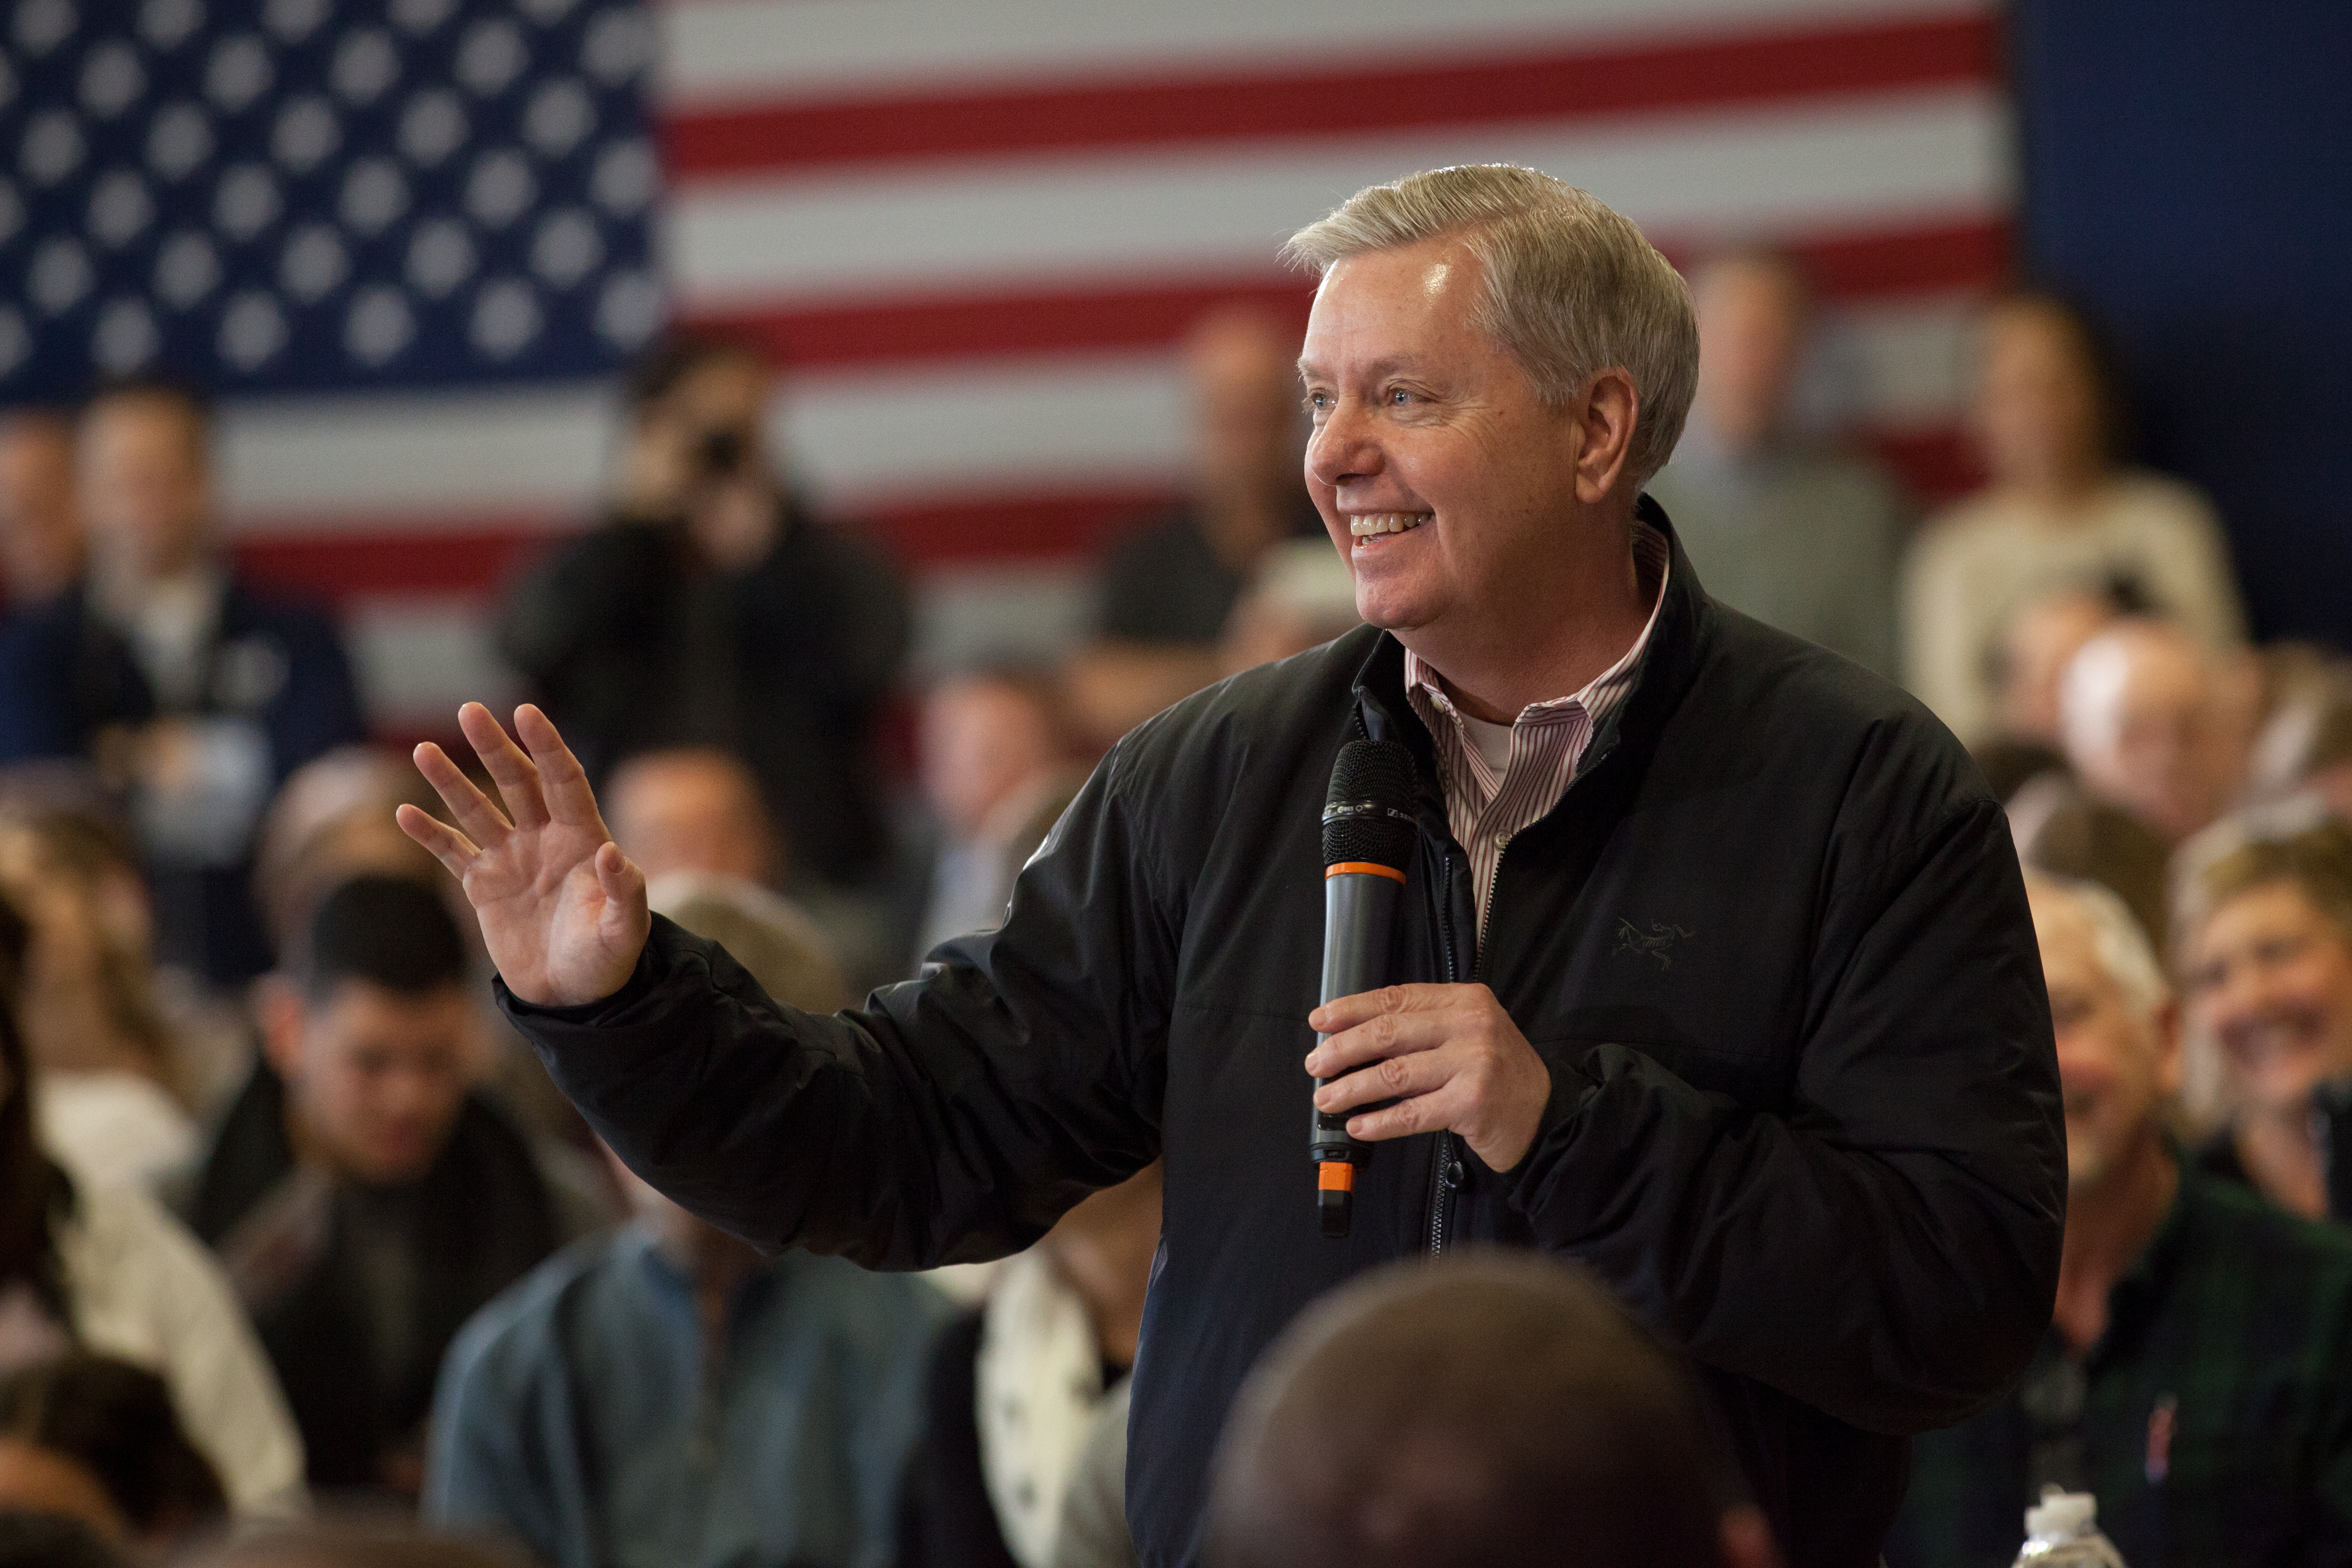 Sen. Lindsey Graham (R-SC) campaigns for Republican presidential candidate Jeb Bush at a town hall style meeting on Feb. 6.